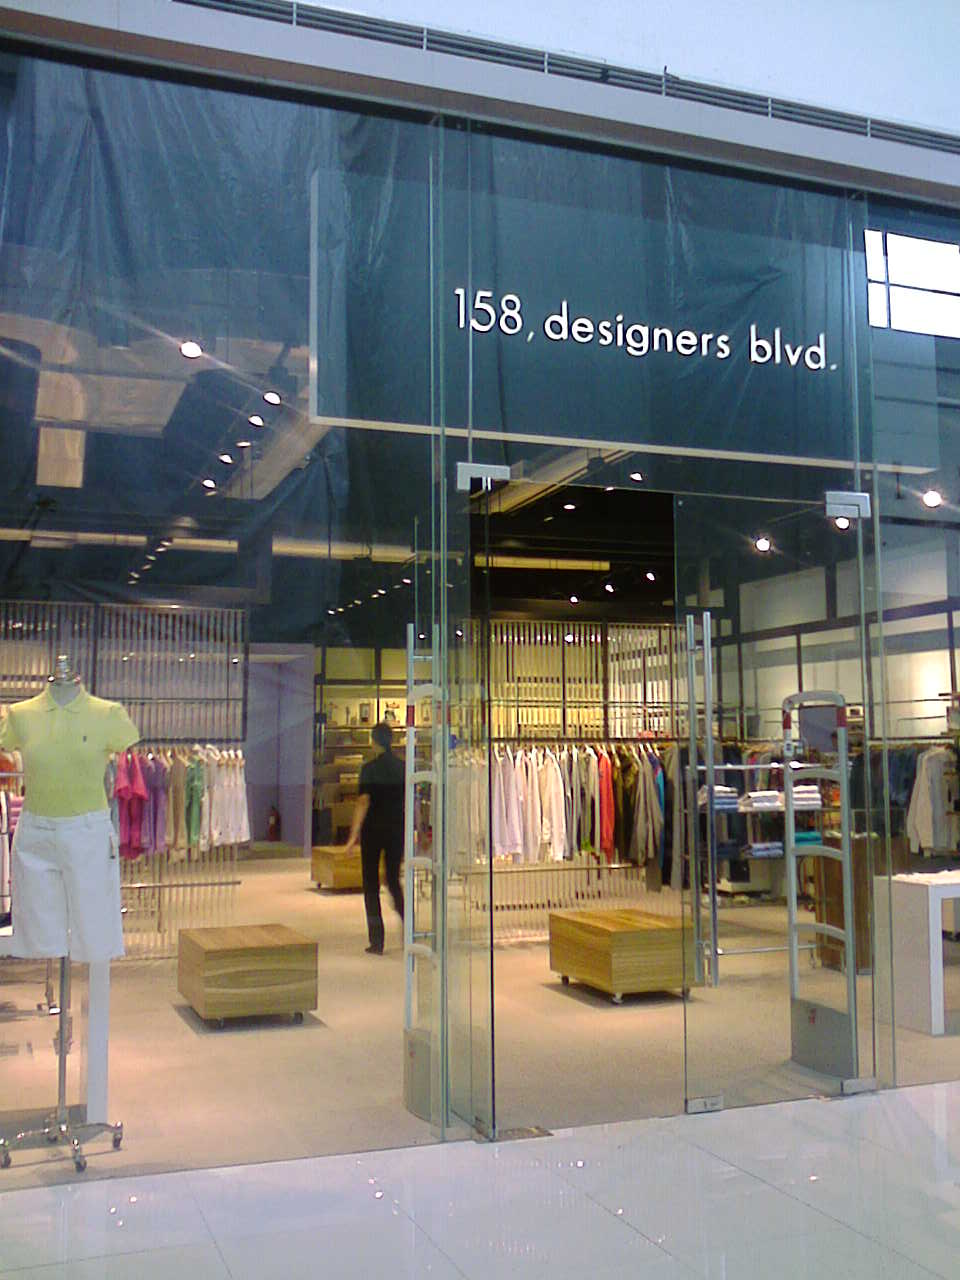 All about family 158 designers blvd terranova folded and hung and the 158 designers blvd is now open stopboris Image collections